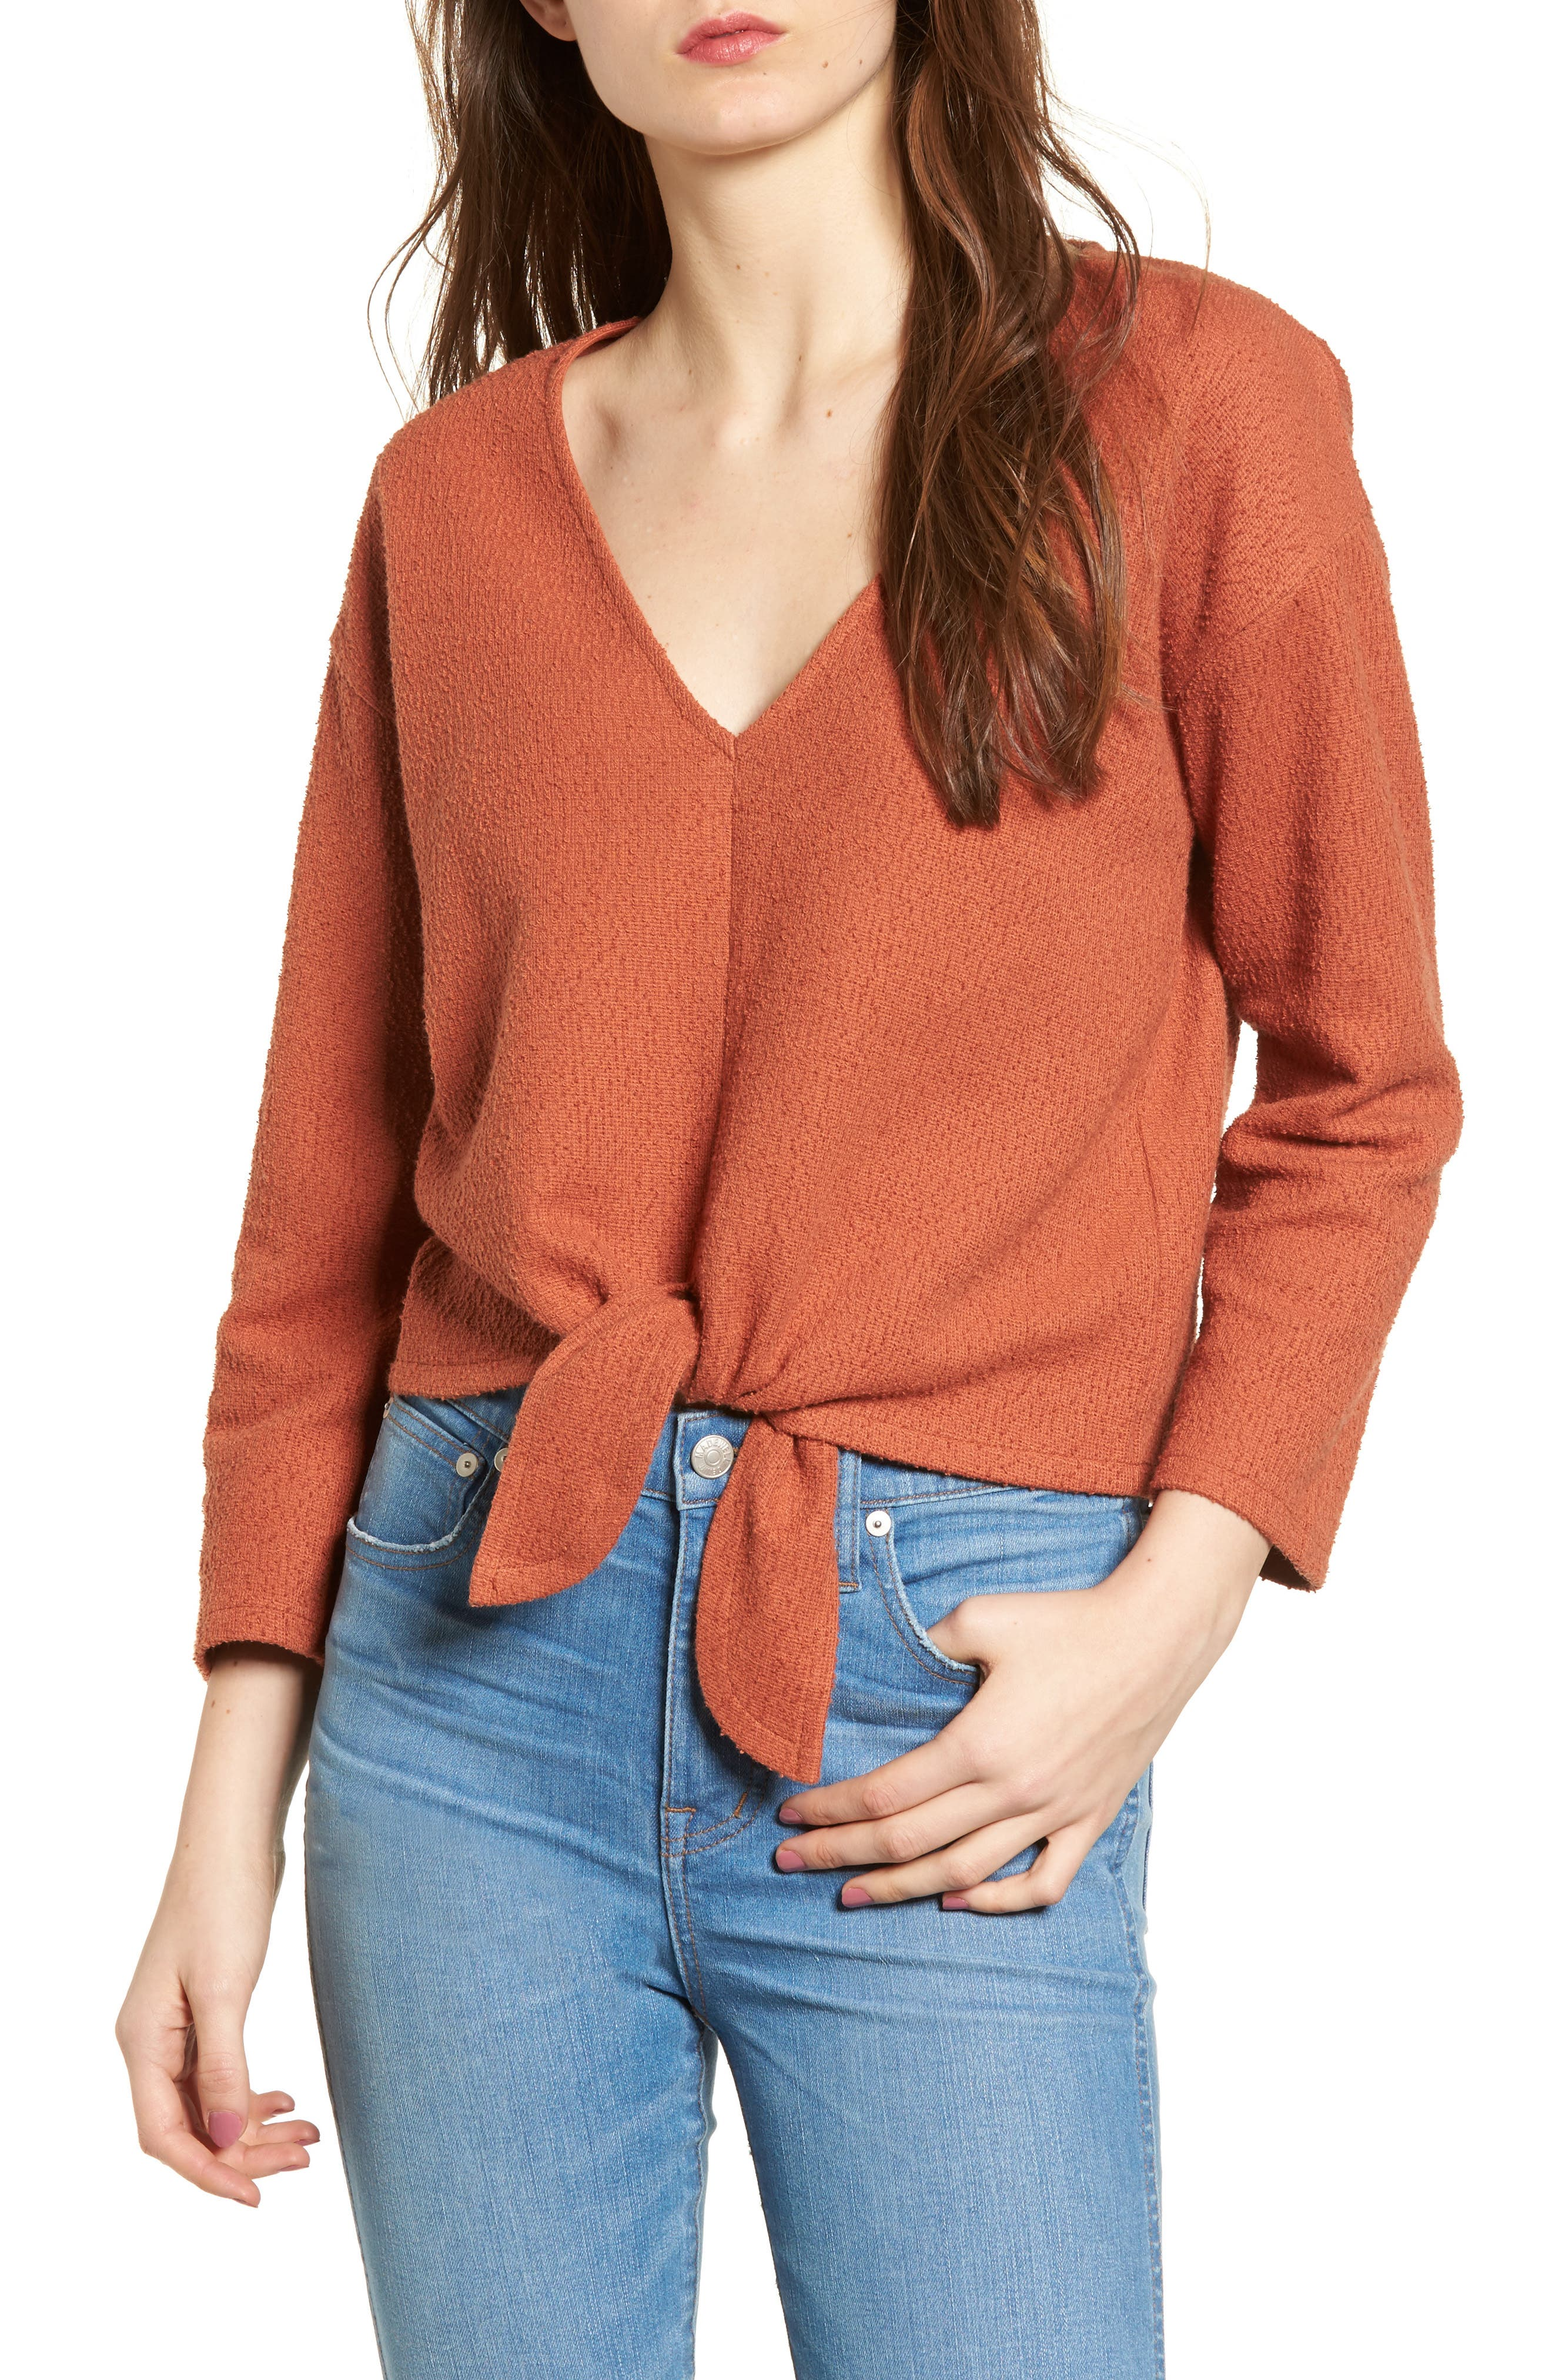 Alternate Image 1 Selected - Madewell Textured Tie Front Top